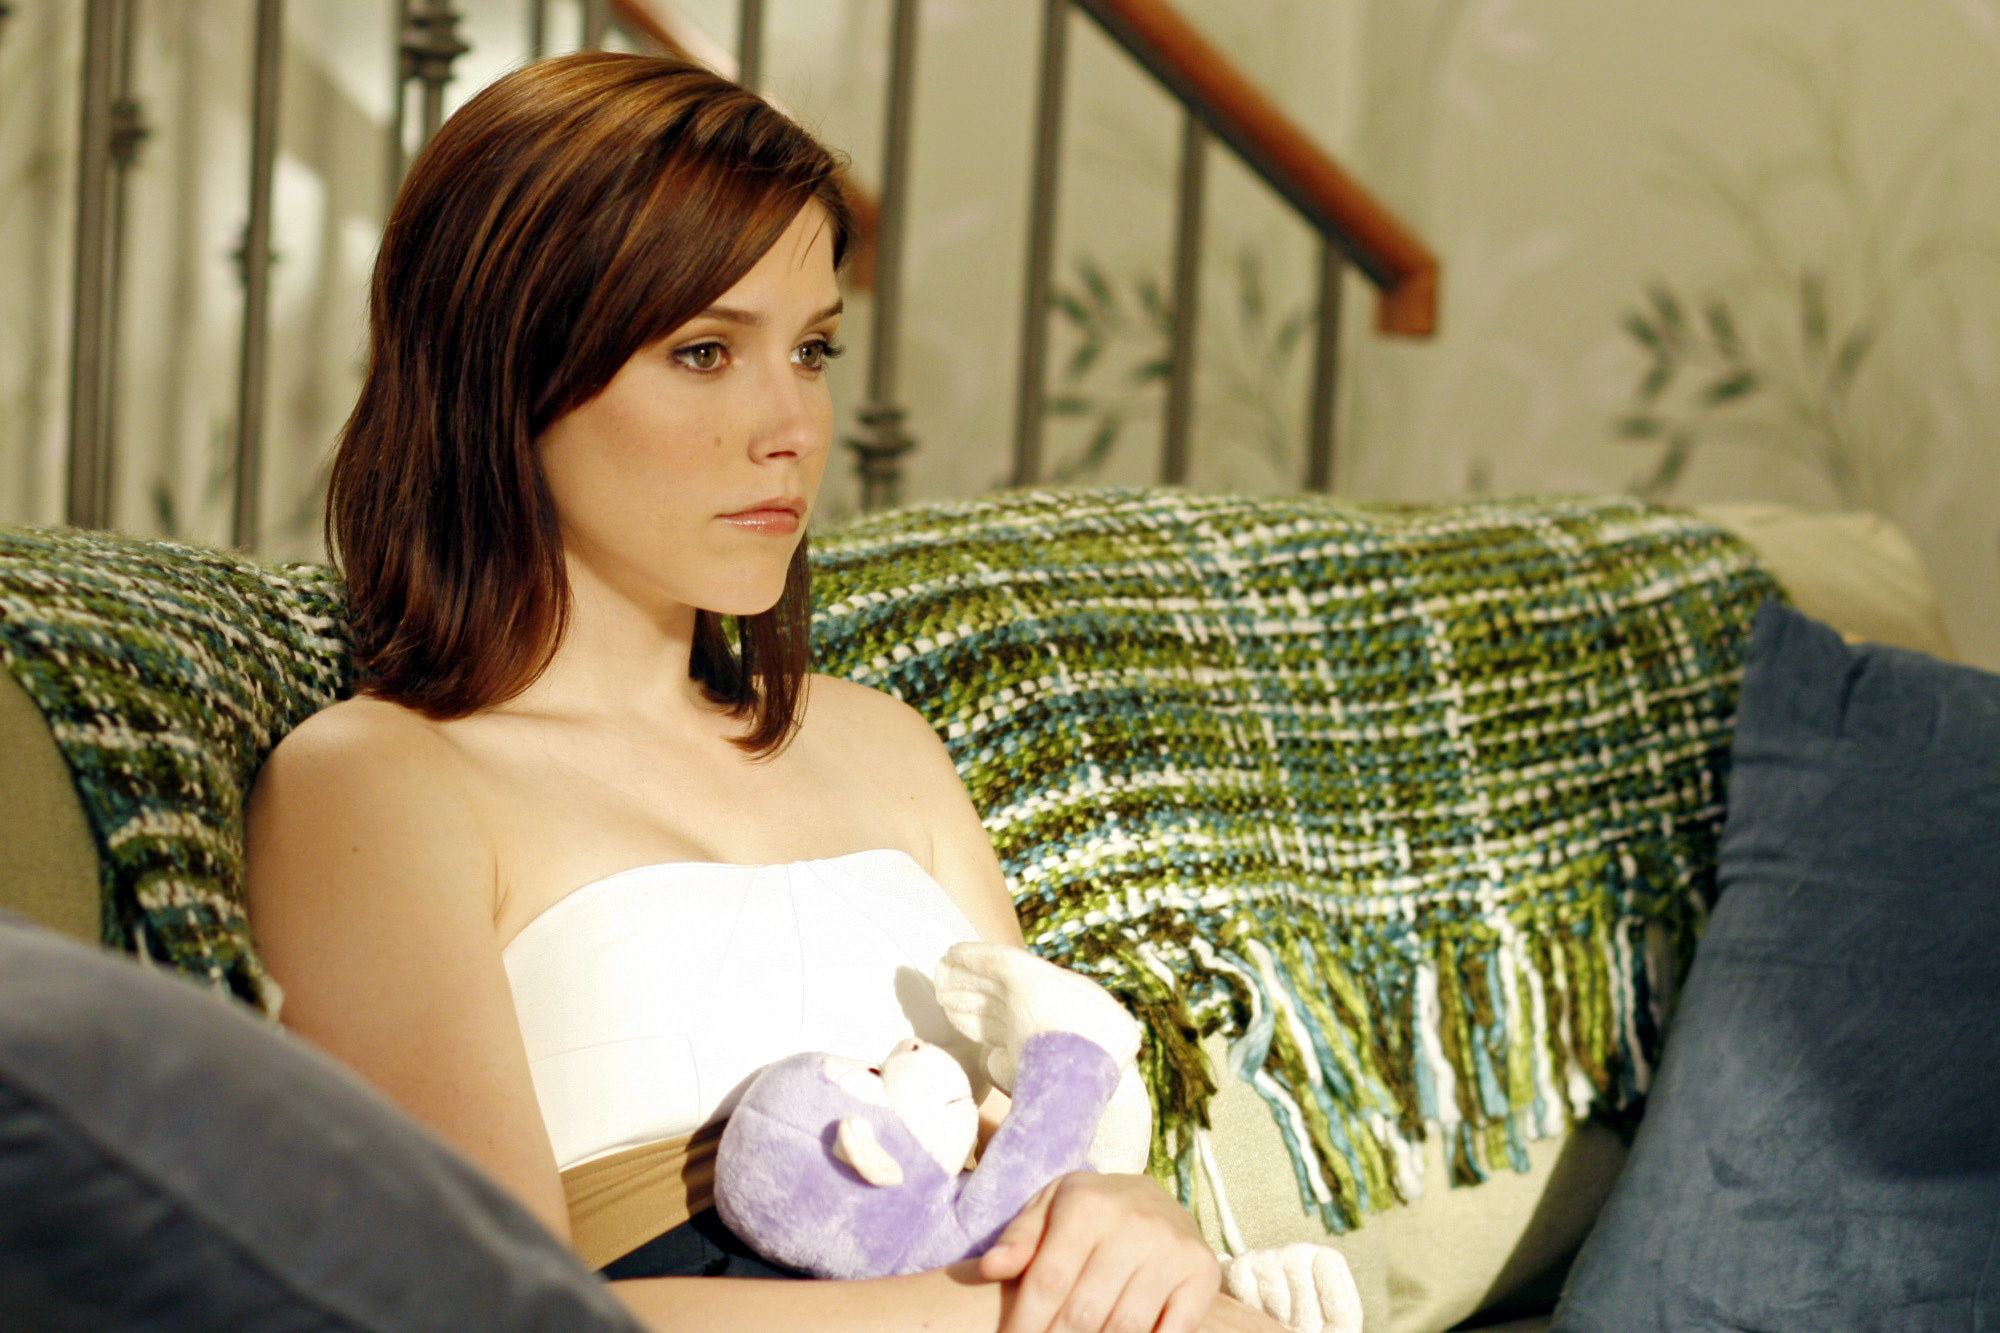 On the set of One Tree Hill, Sophia Bush sits on a couch, clutching a monkey stuffed animal, looking concerned